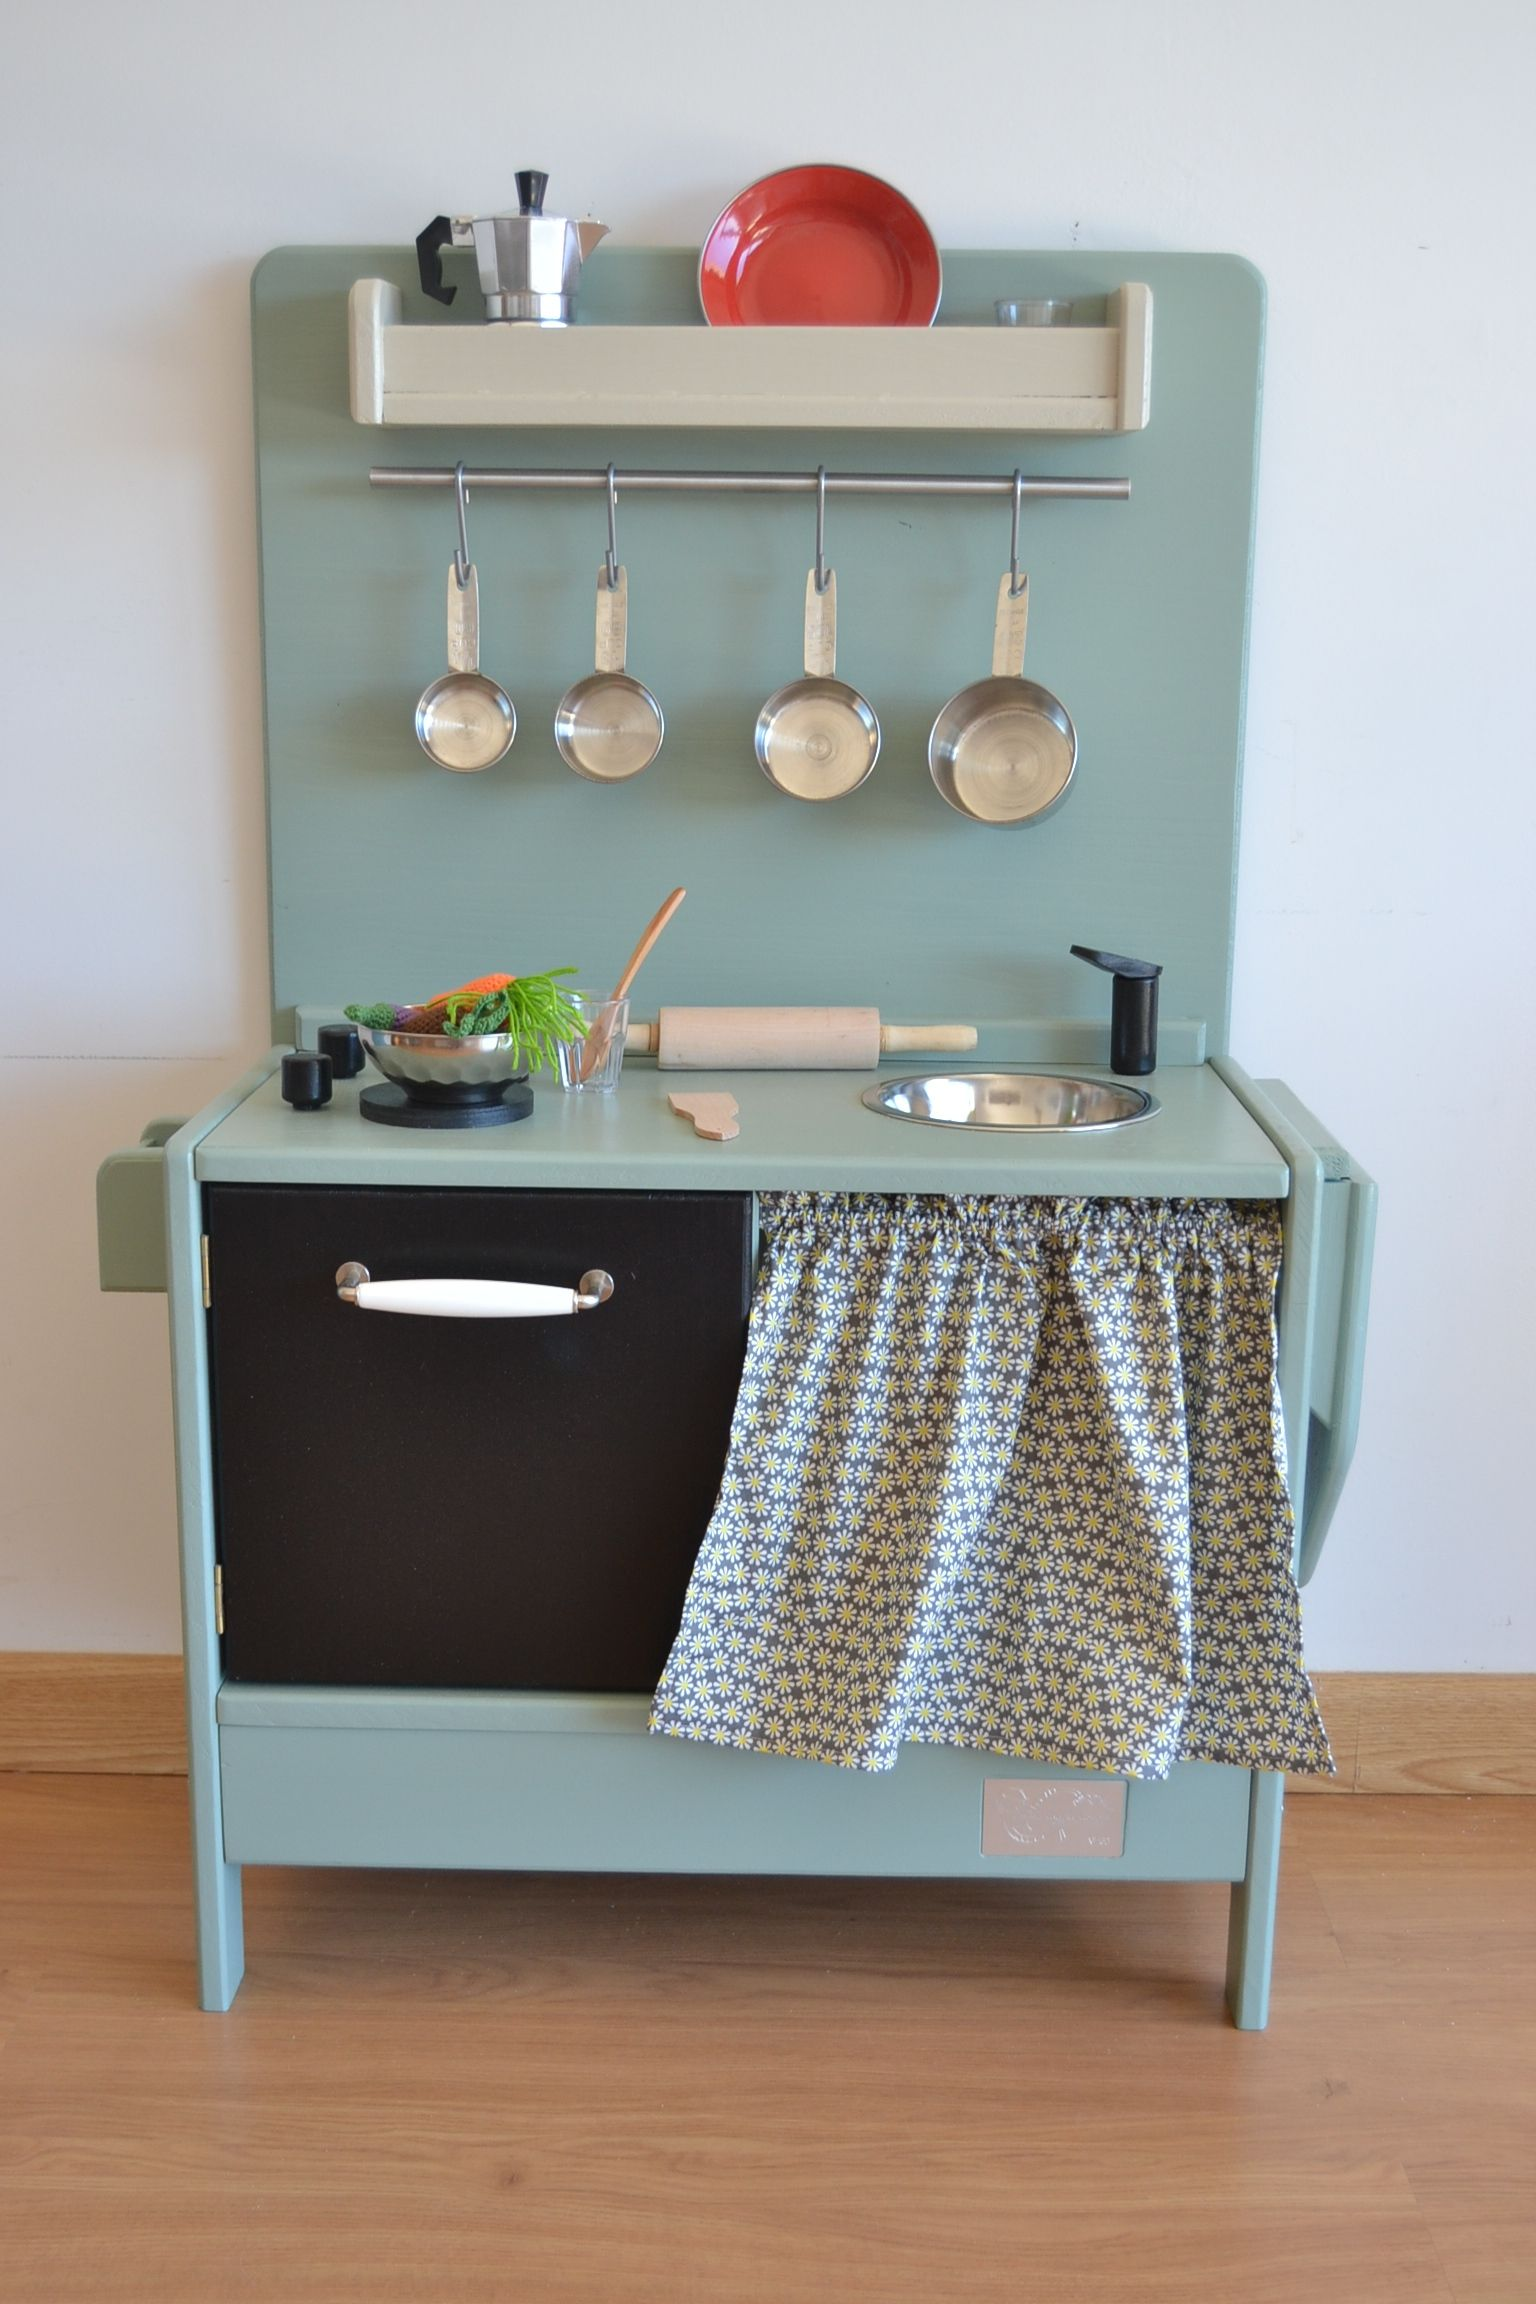 Exelent Toy Kitchens Pattern - Kitchen Cabinets | Ideas ...